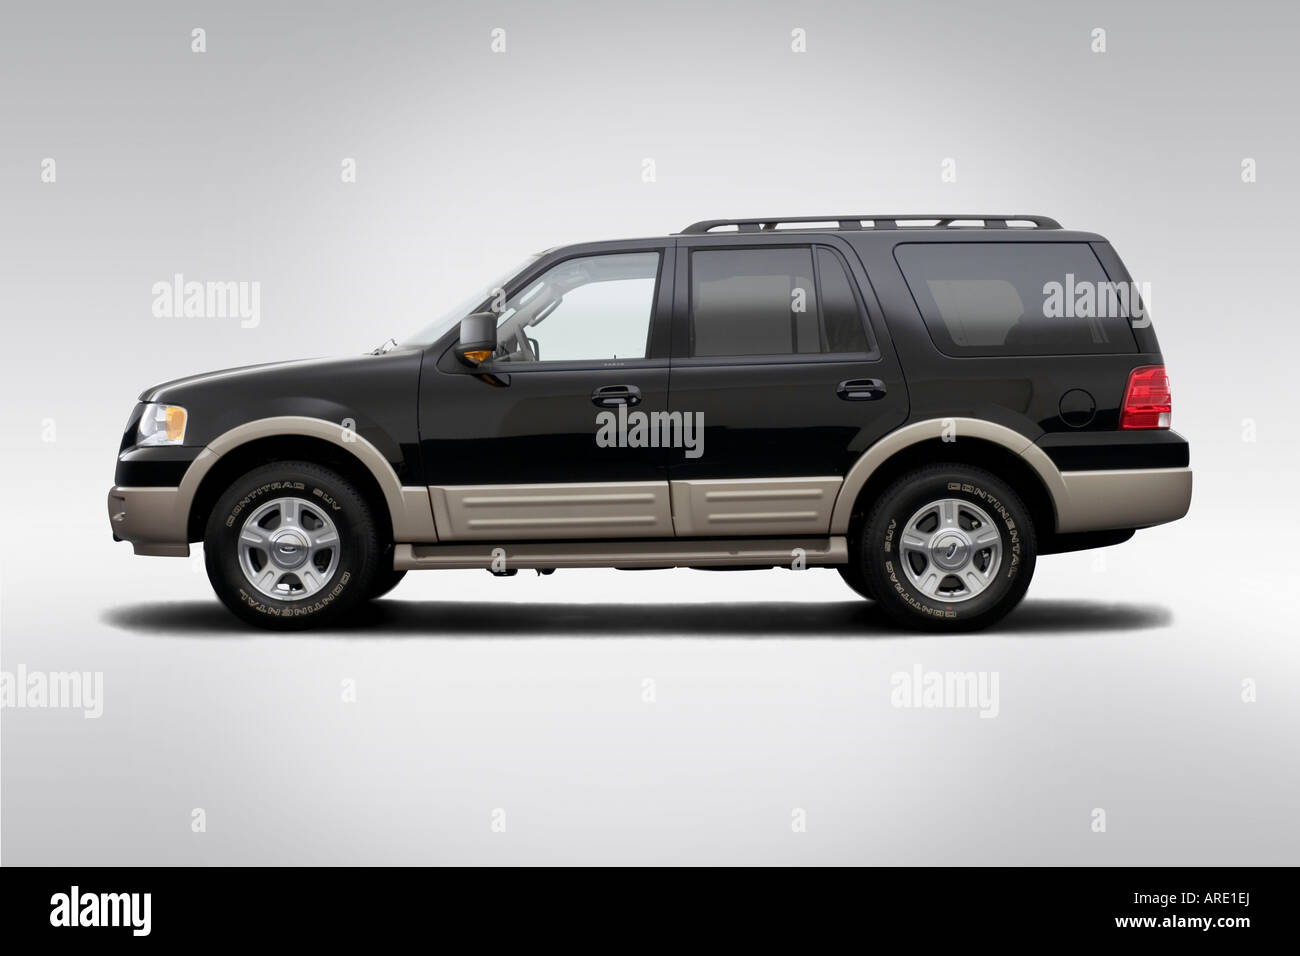 2006 ford expedition eddie bauer in black drivers side profile stock image